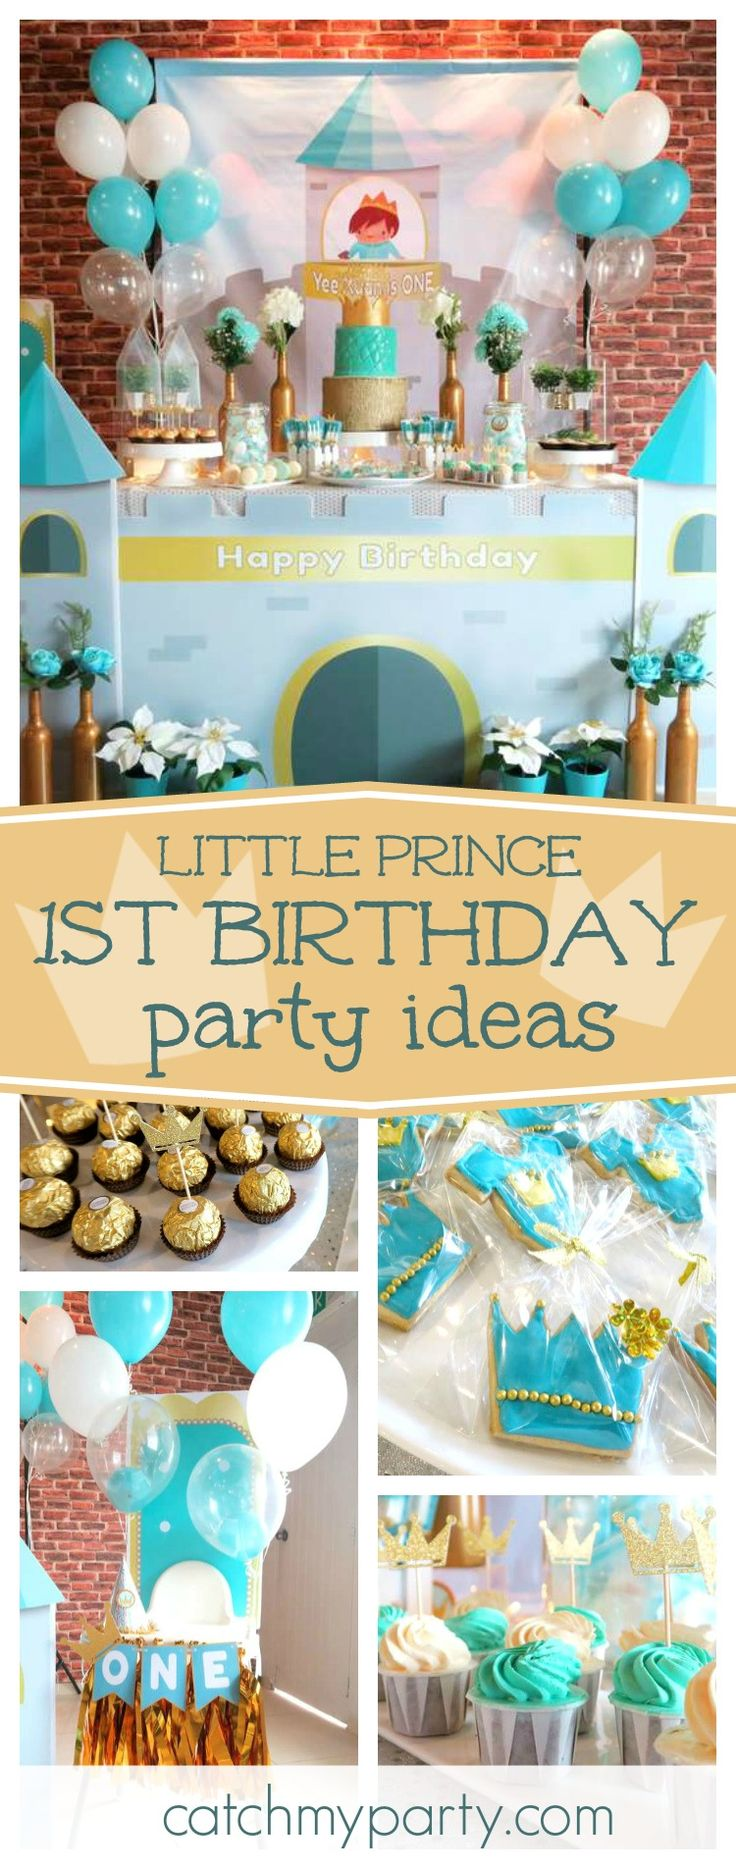 Check out this awesome Little Prince 1st Birthday. The castle decorated dessert table is incredible!! See more party ideas and share yours at CatchMyParty.com